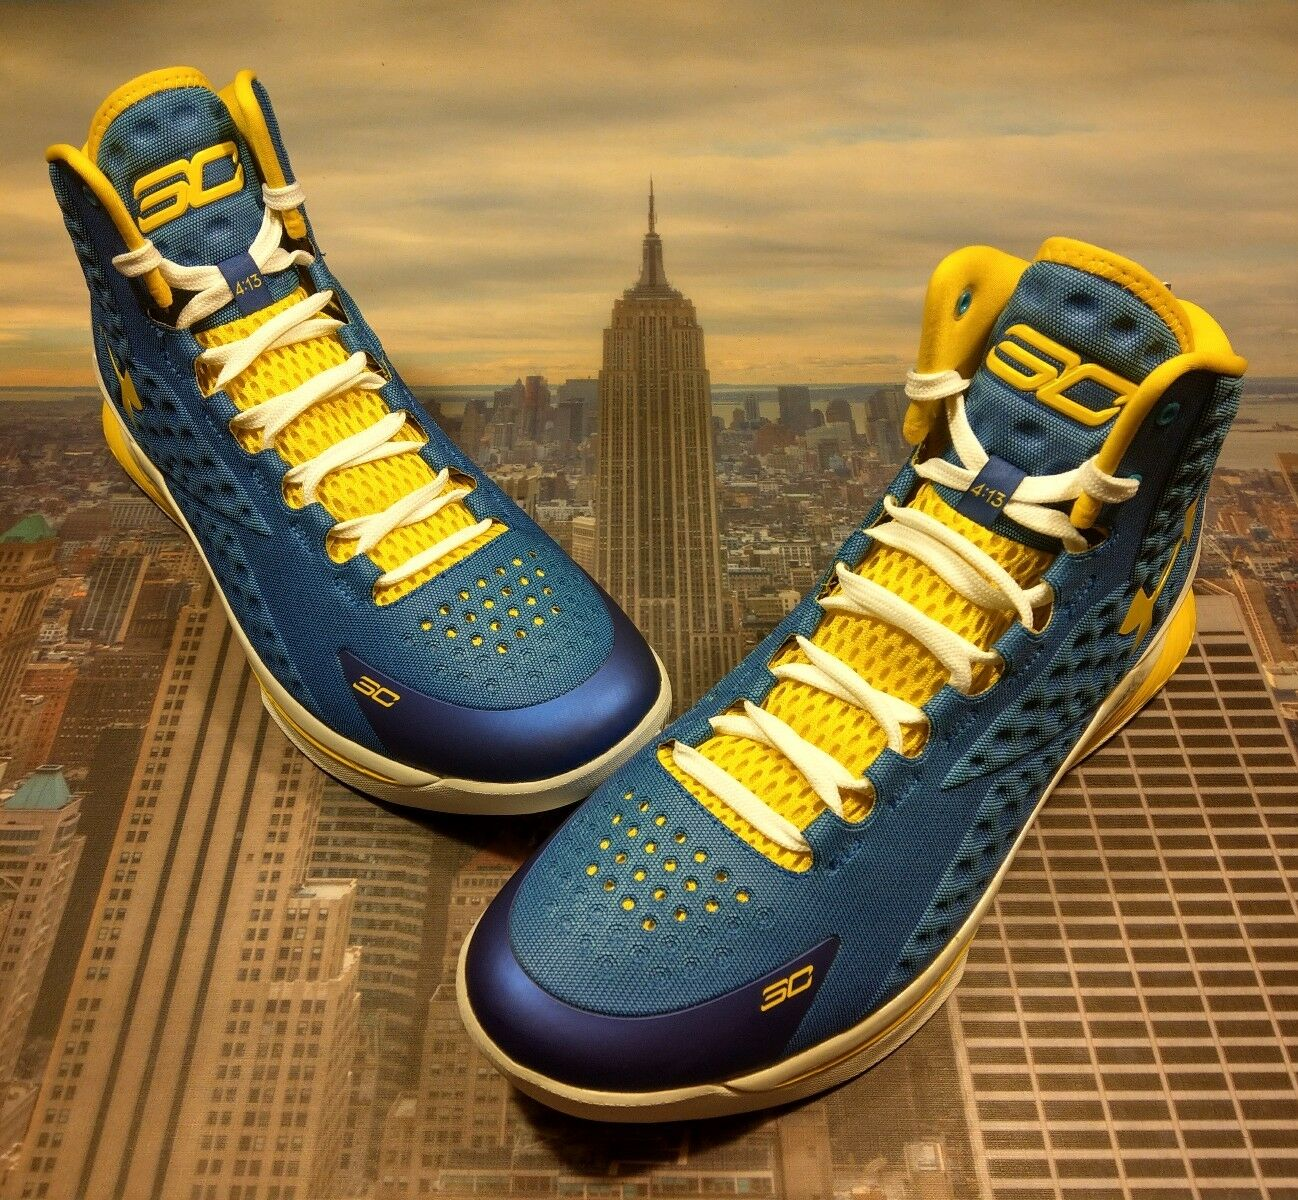 Under Armour Armour Under UA Curry 1 One SC1 Home I Can Do All Things Size 15 1258723 402 New 769c18